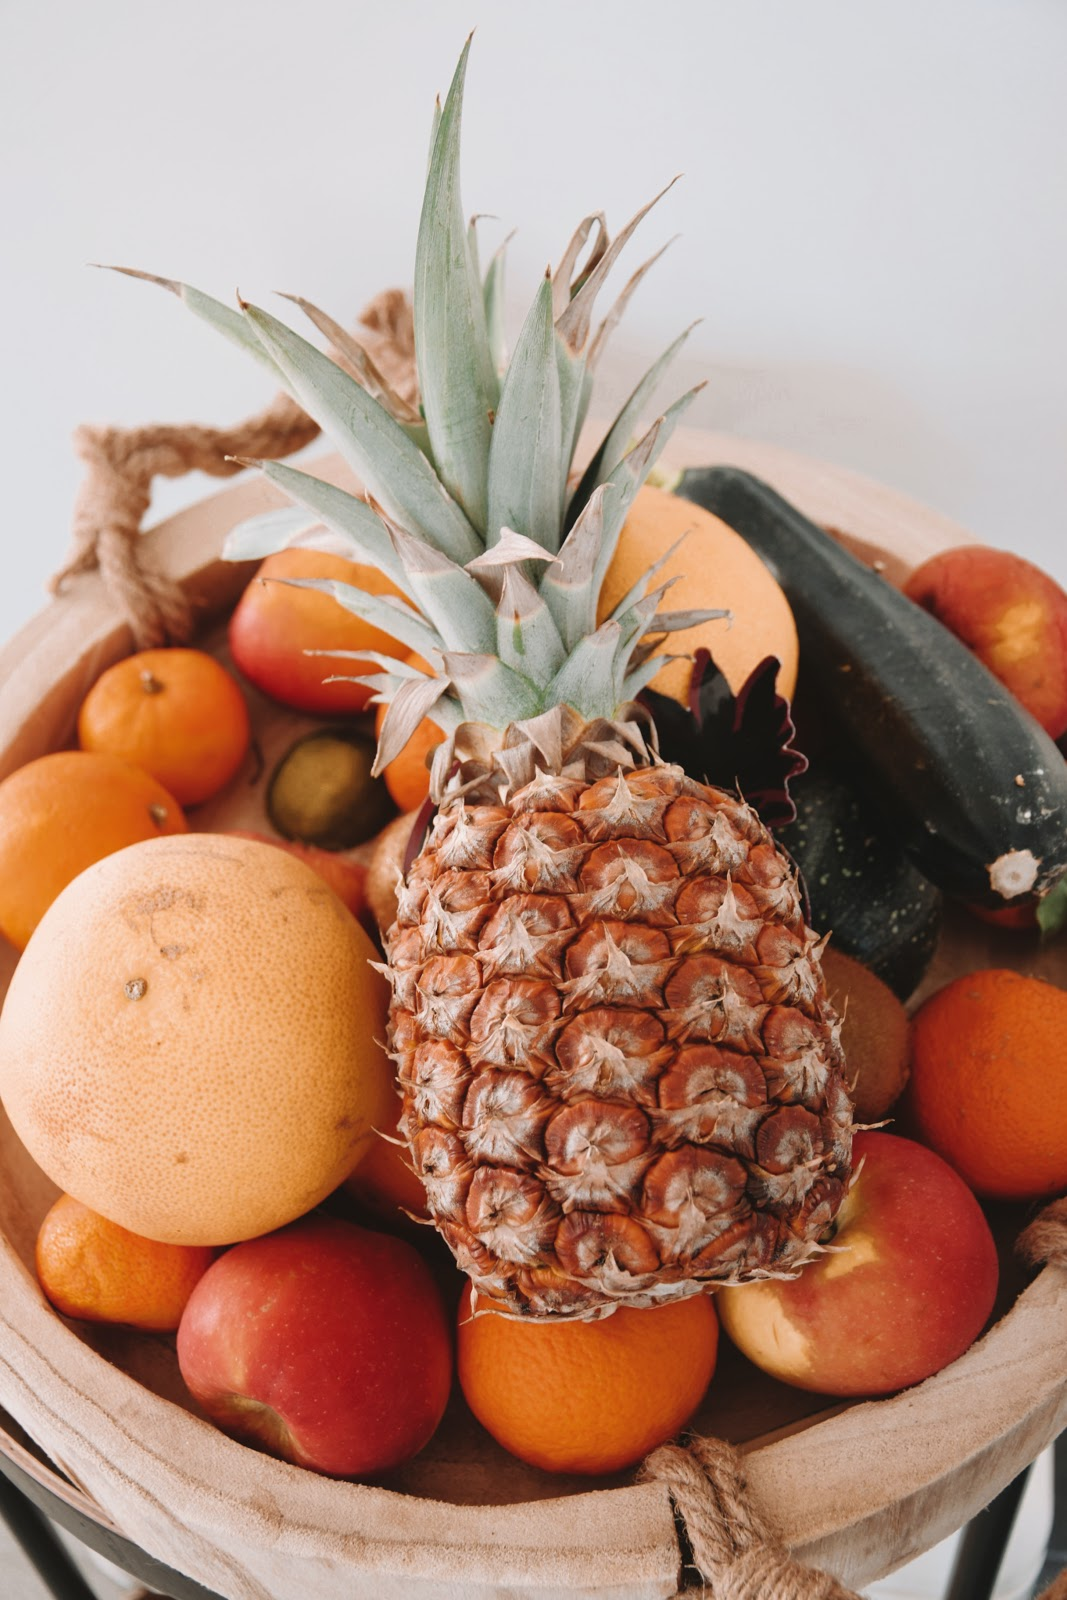 fruits with vitamins and minerals for healthy skin function